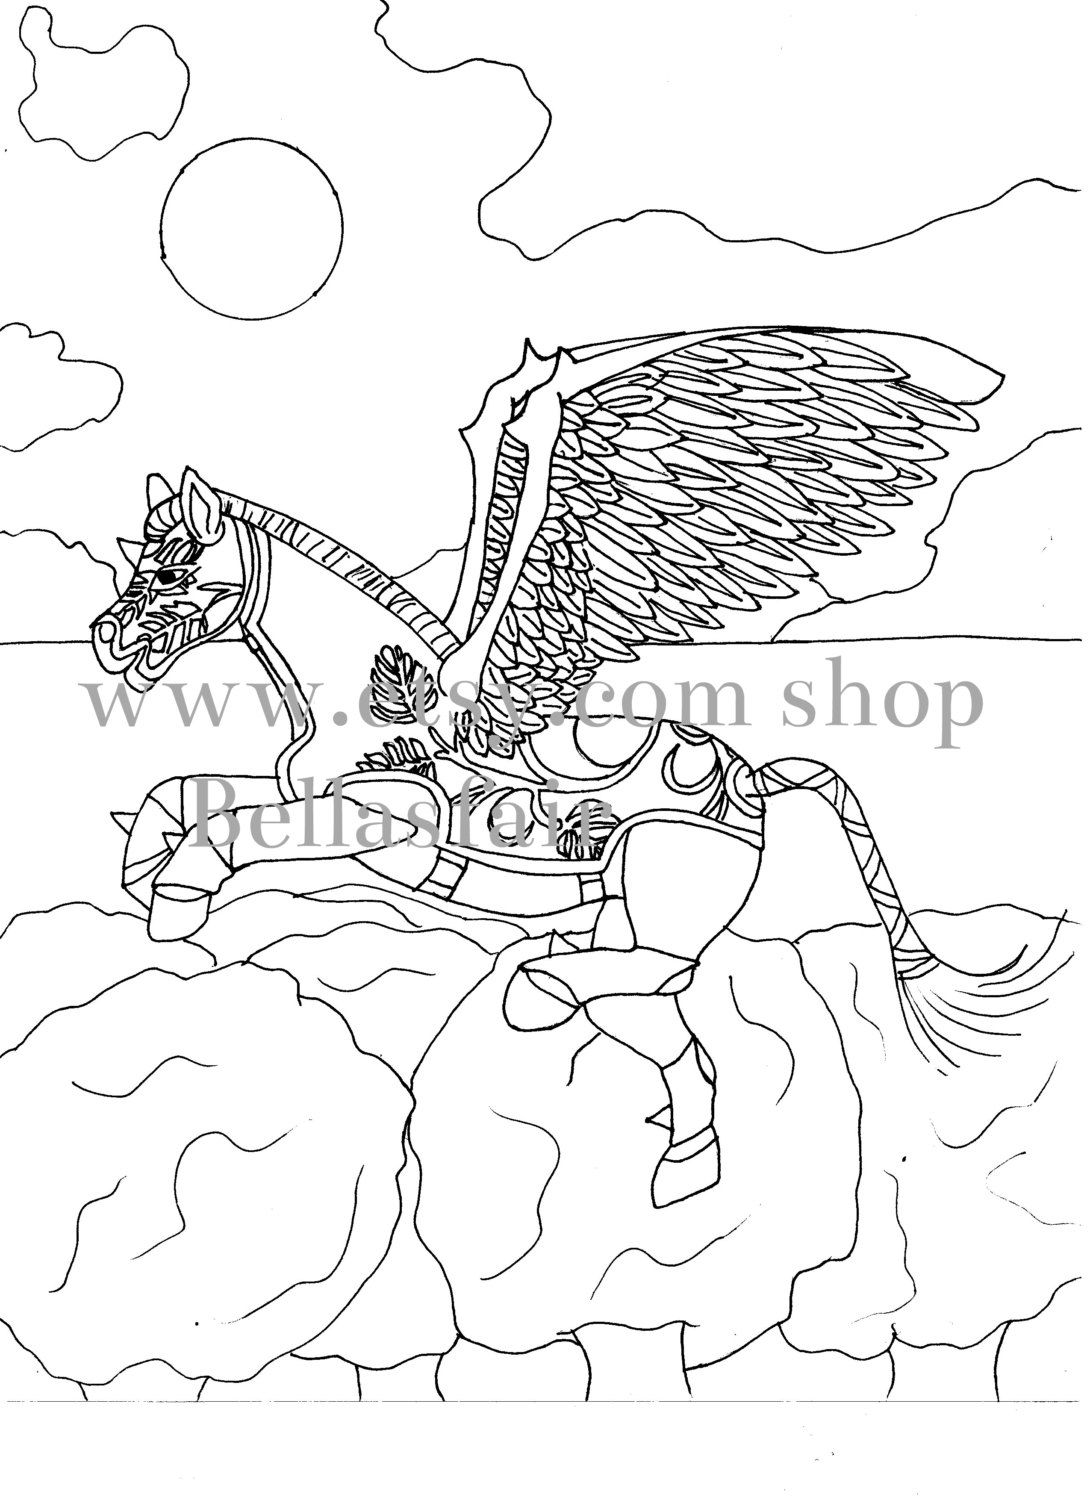 Hand Drawn Mythical Horse, coloring, coloring page, fantasy horse ...